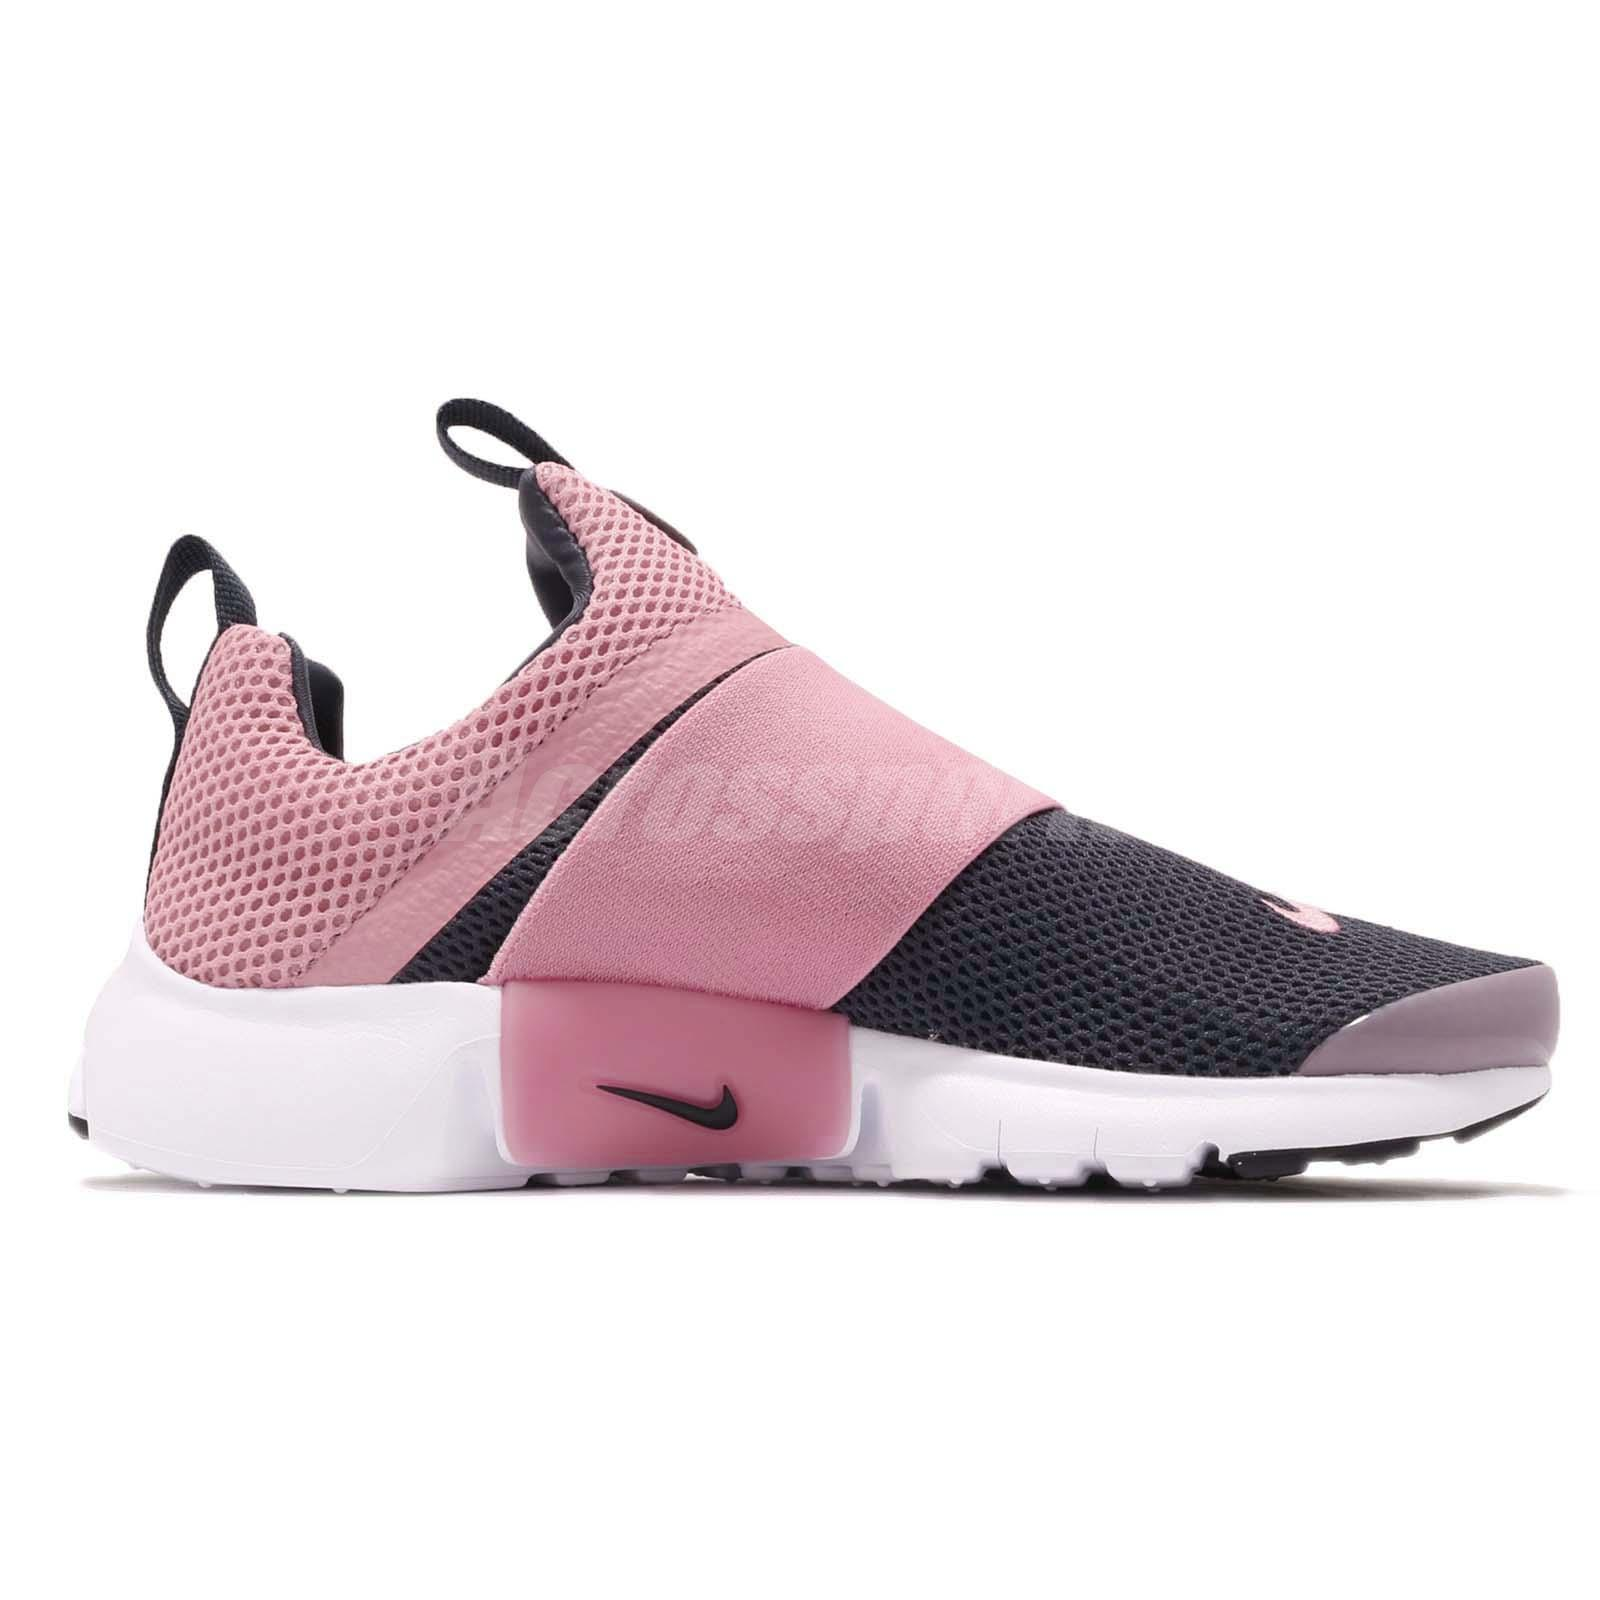 0b46b655c822a Nike Presto Extreme GS Elemental Pink Womens Running Shoes Lifestyle ...